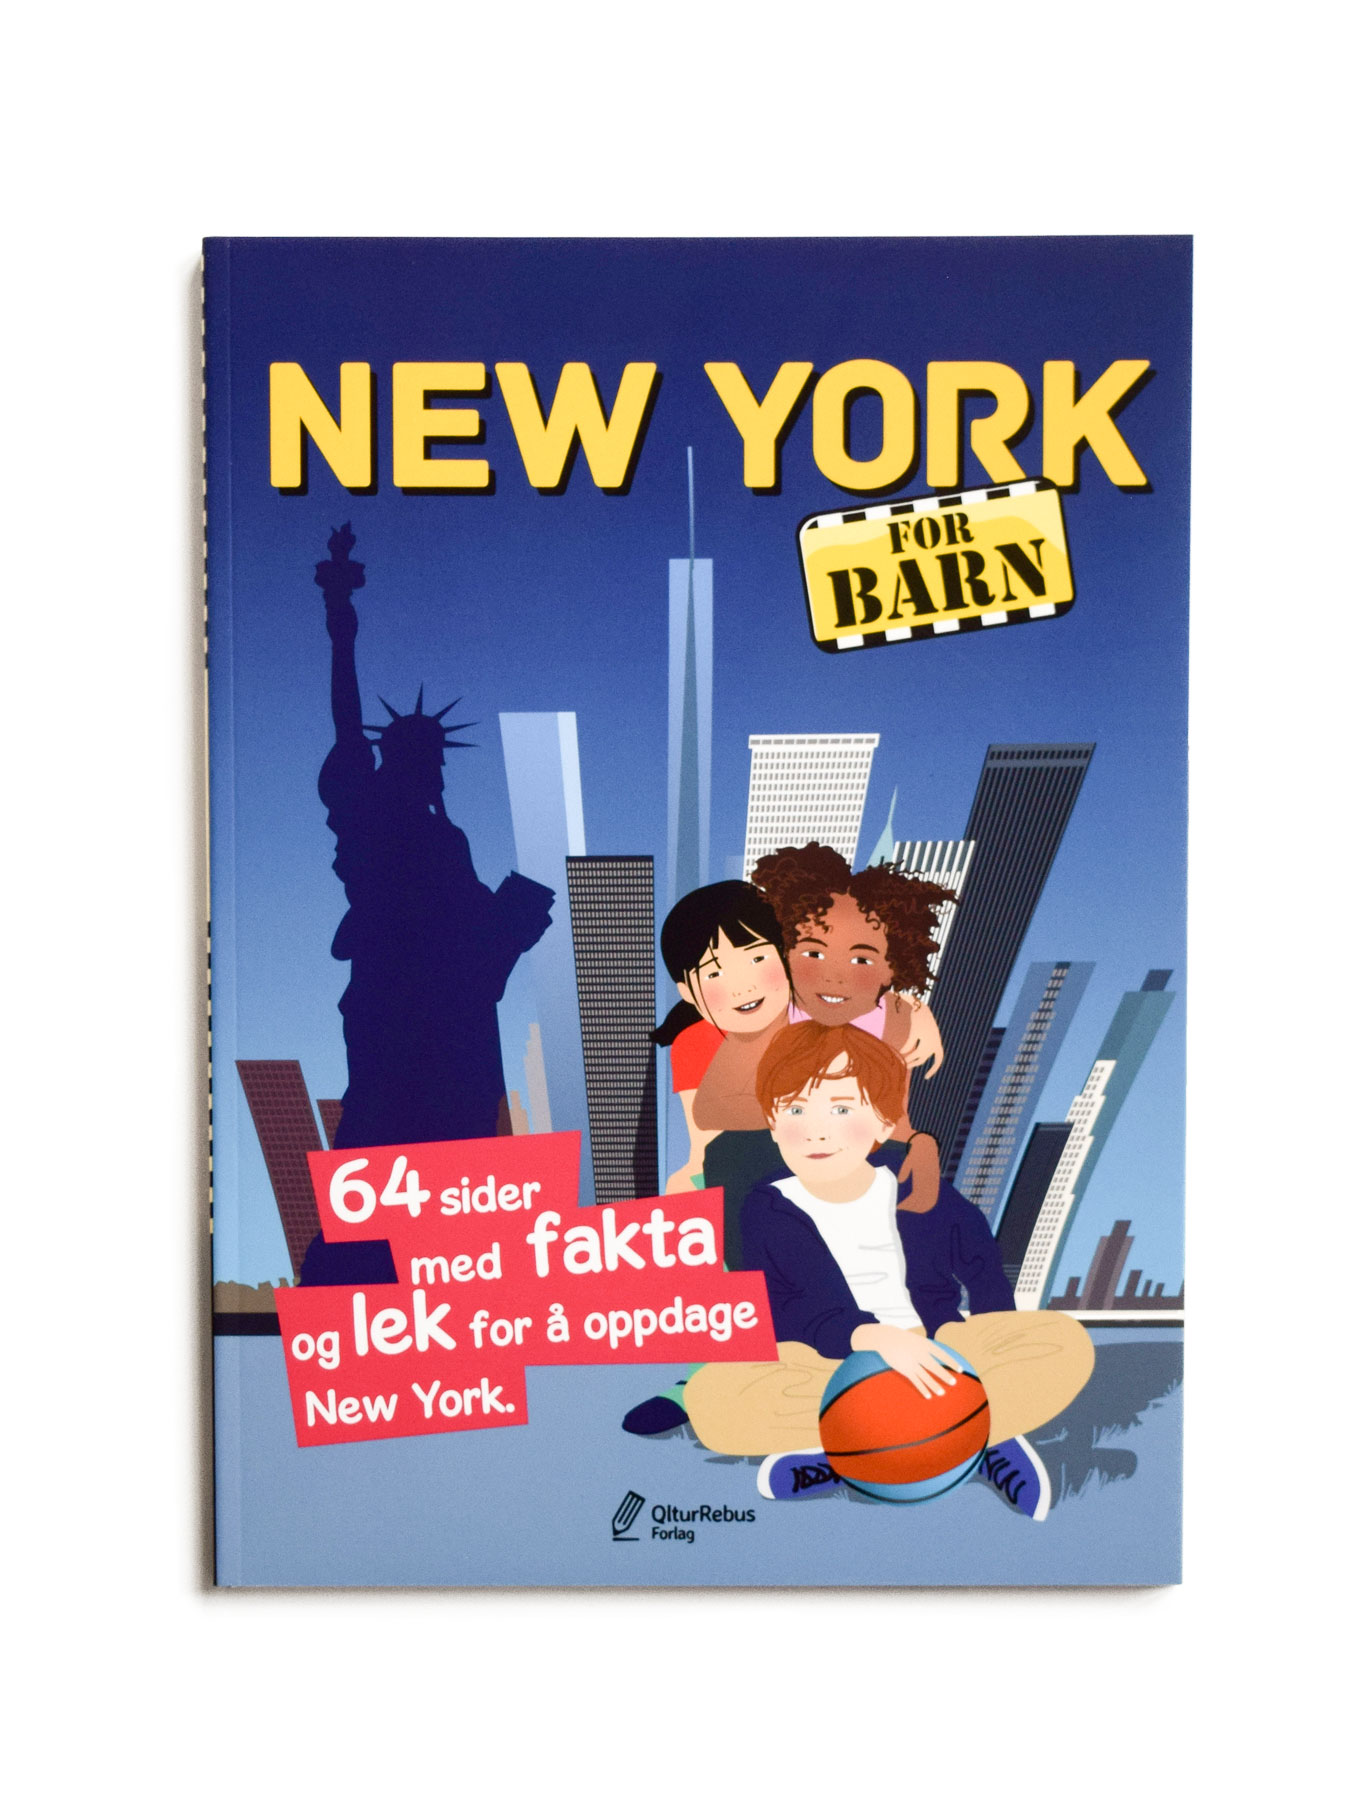 Qlturrebus_New_York_for_barn_cover_forside.jpg